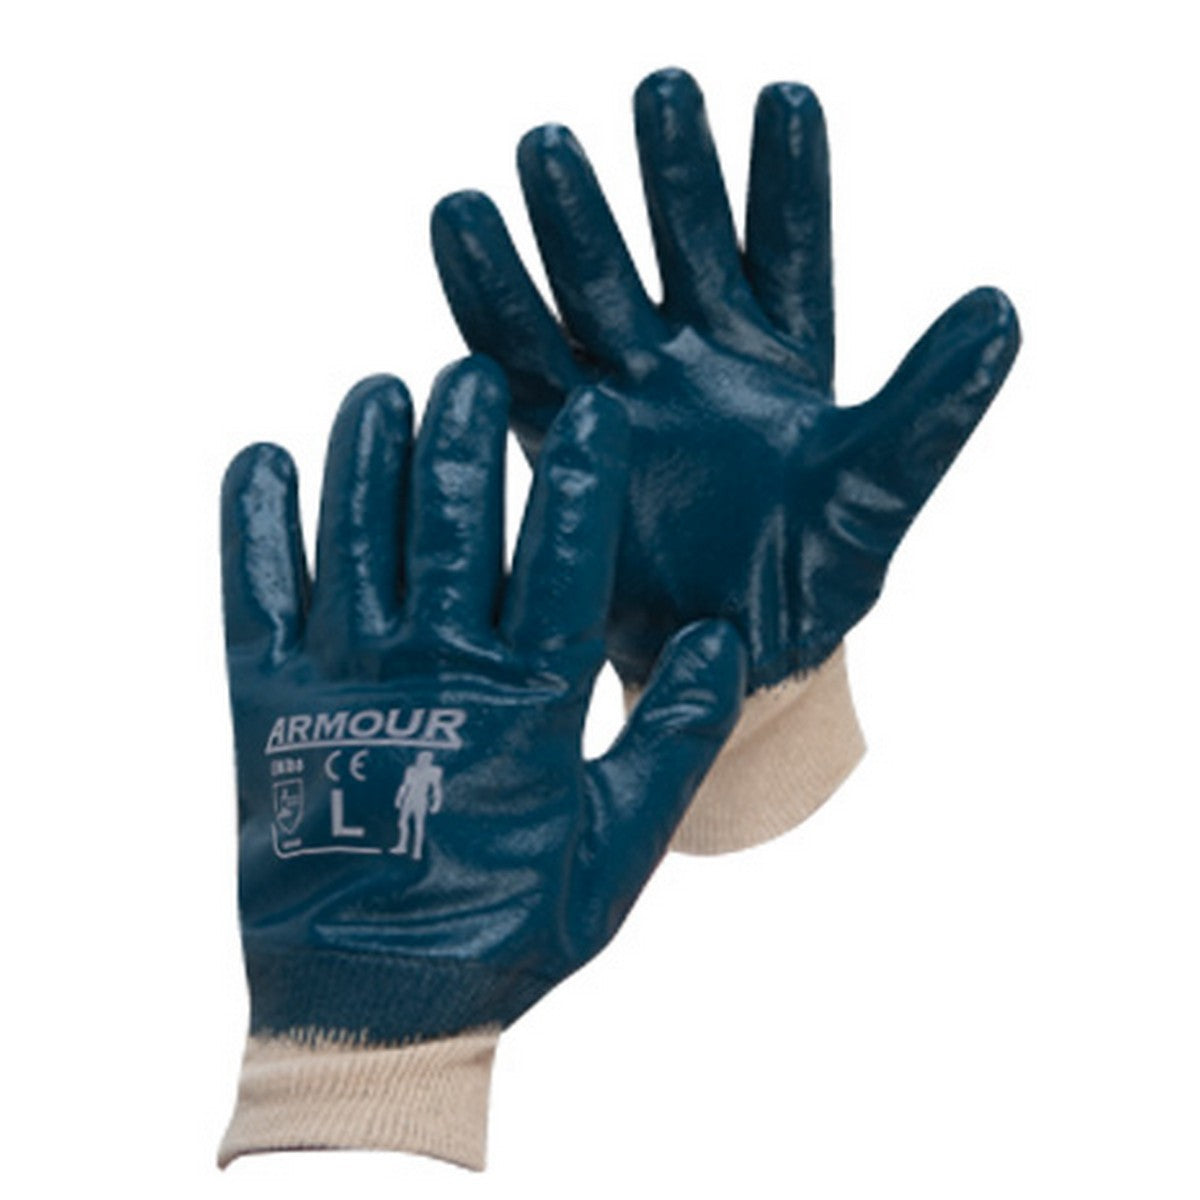 Image of Armour Blue Nitrile Gloves